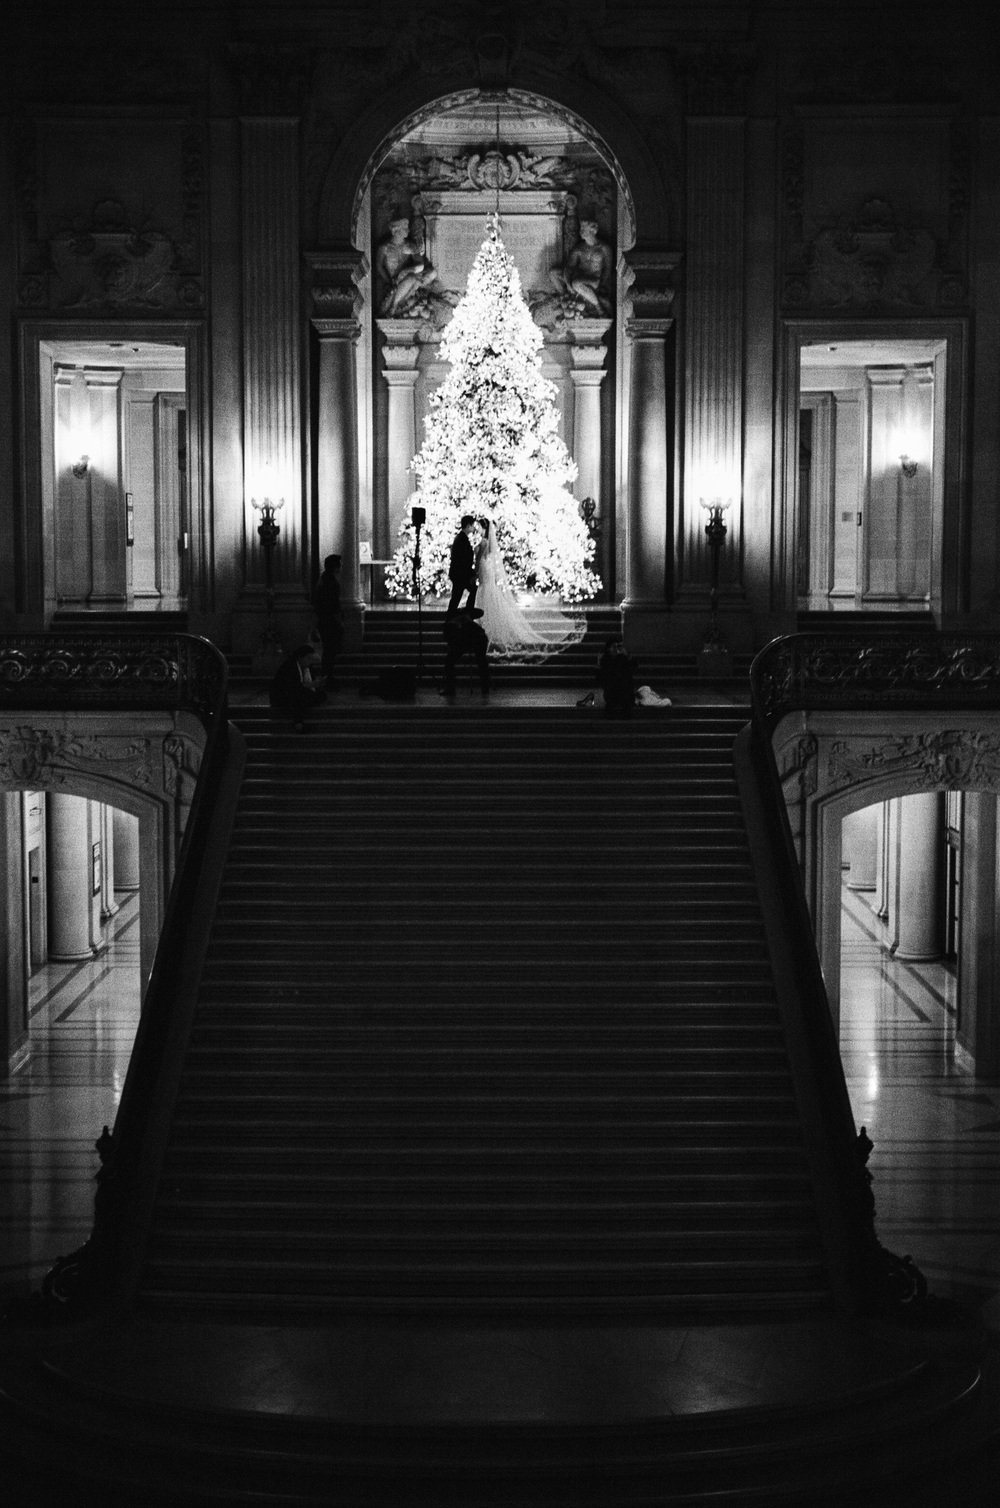 Caught a wedding shoot at SF city hall